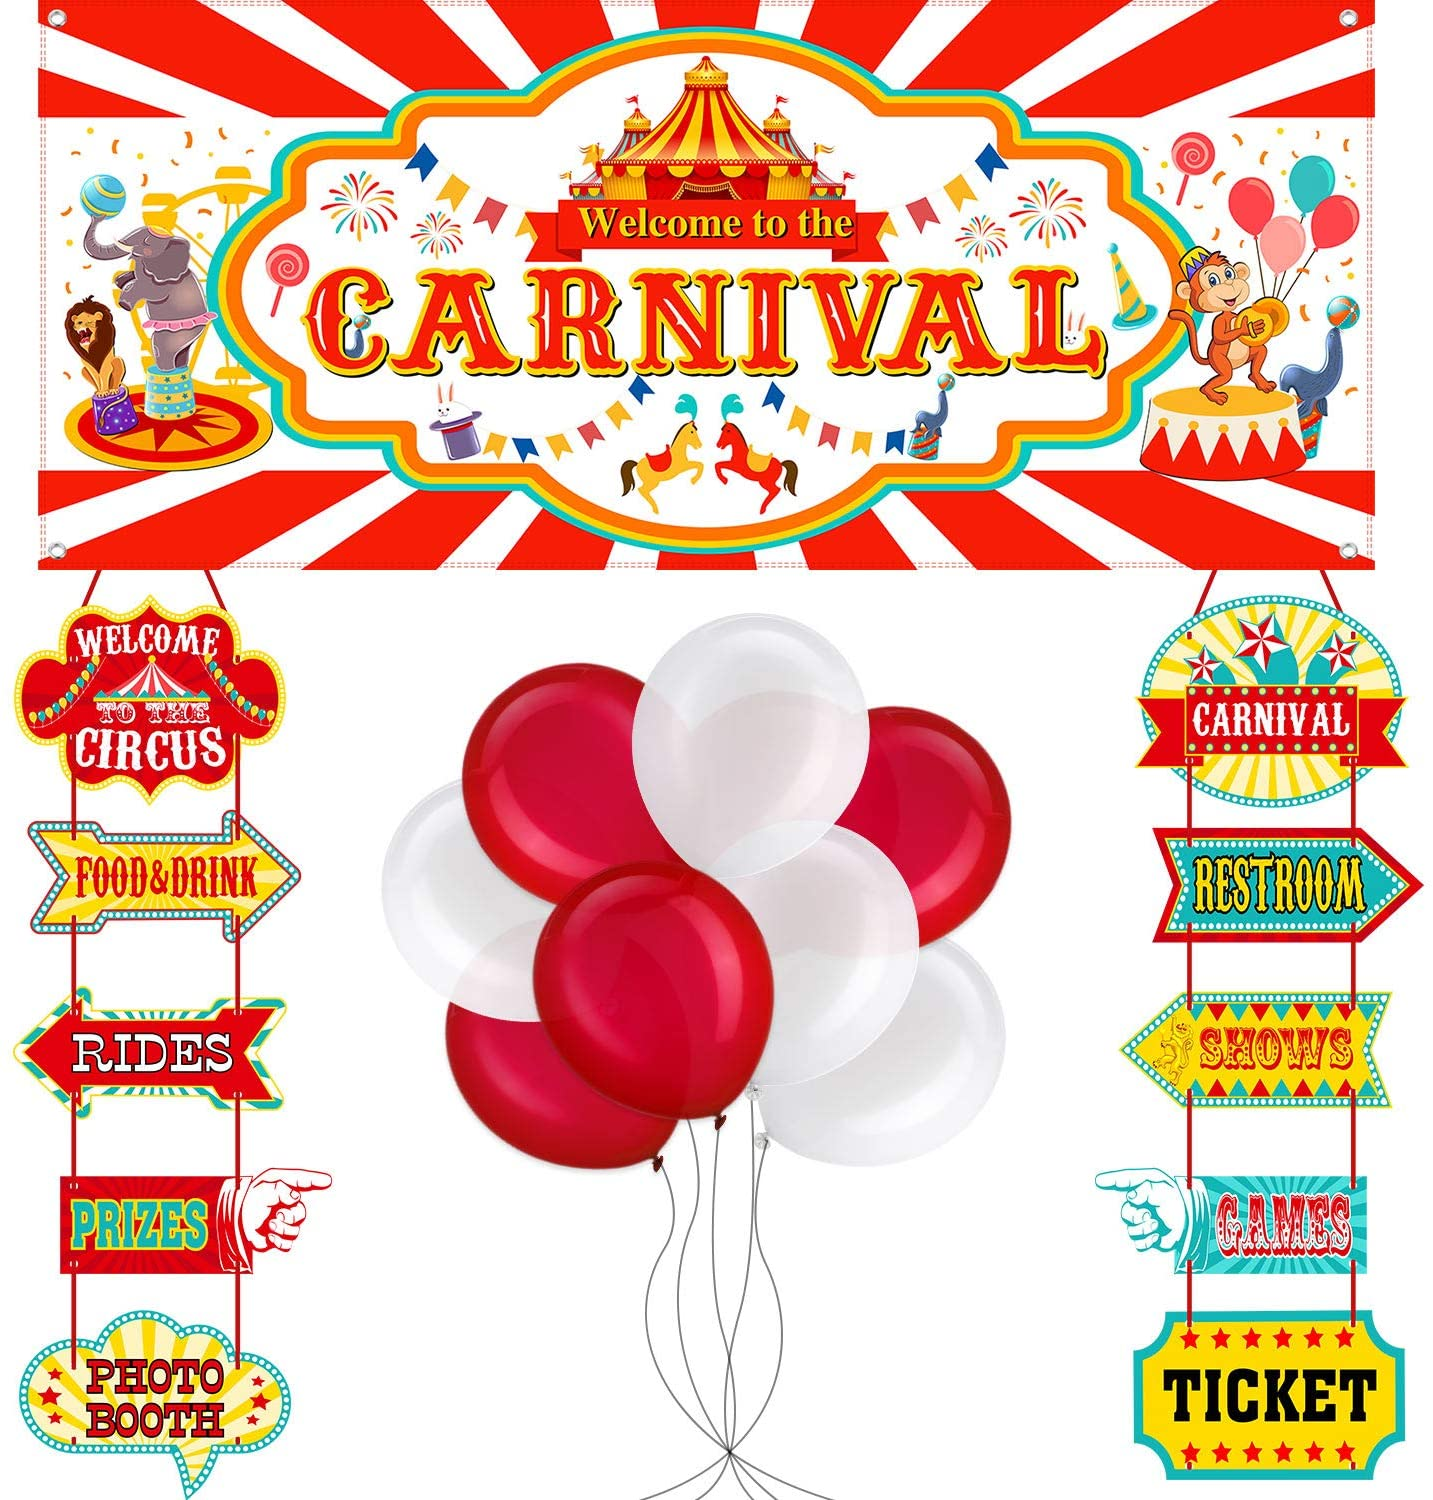 46 Pieces Circus Carnival Party Decoration Set Circus Theme Carnival Banner Carnival Cutouts and Circus Color Balloons Circus Carnival Party Suppliers and Favors